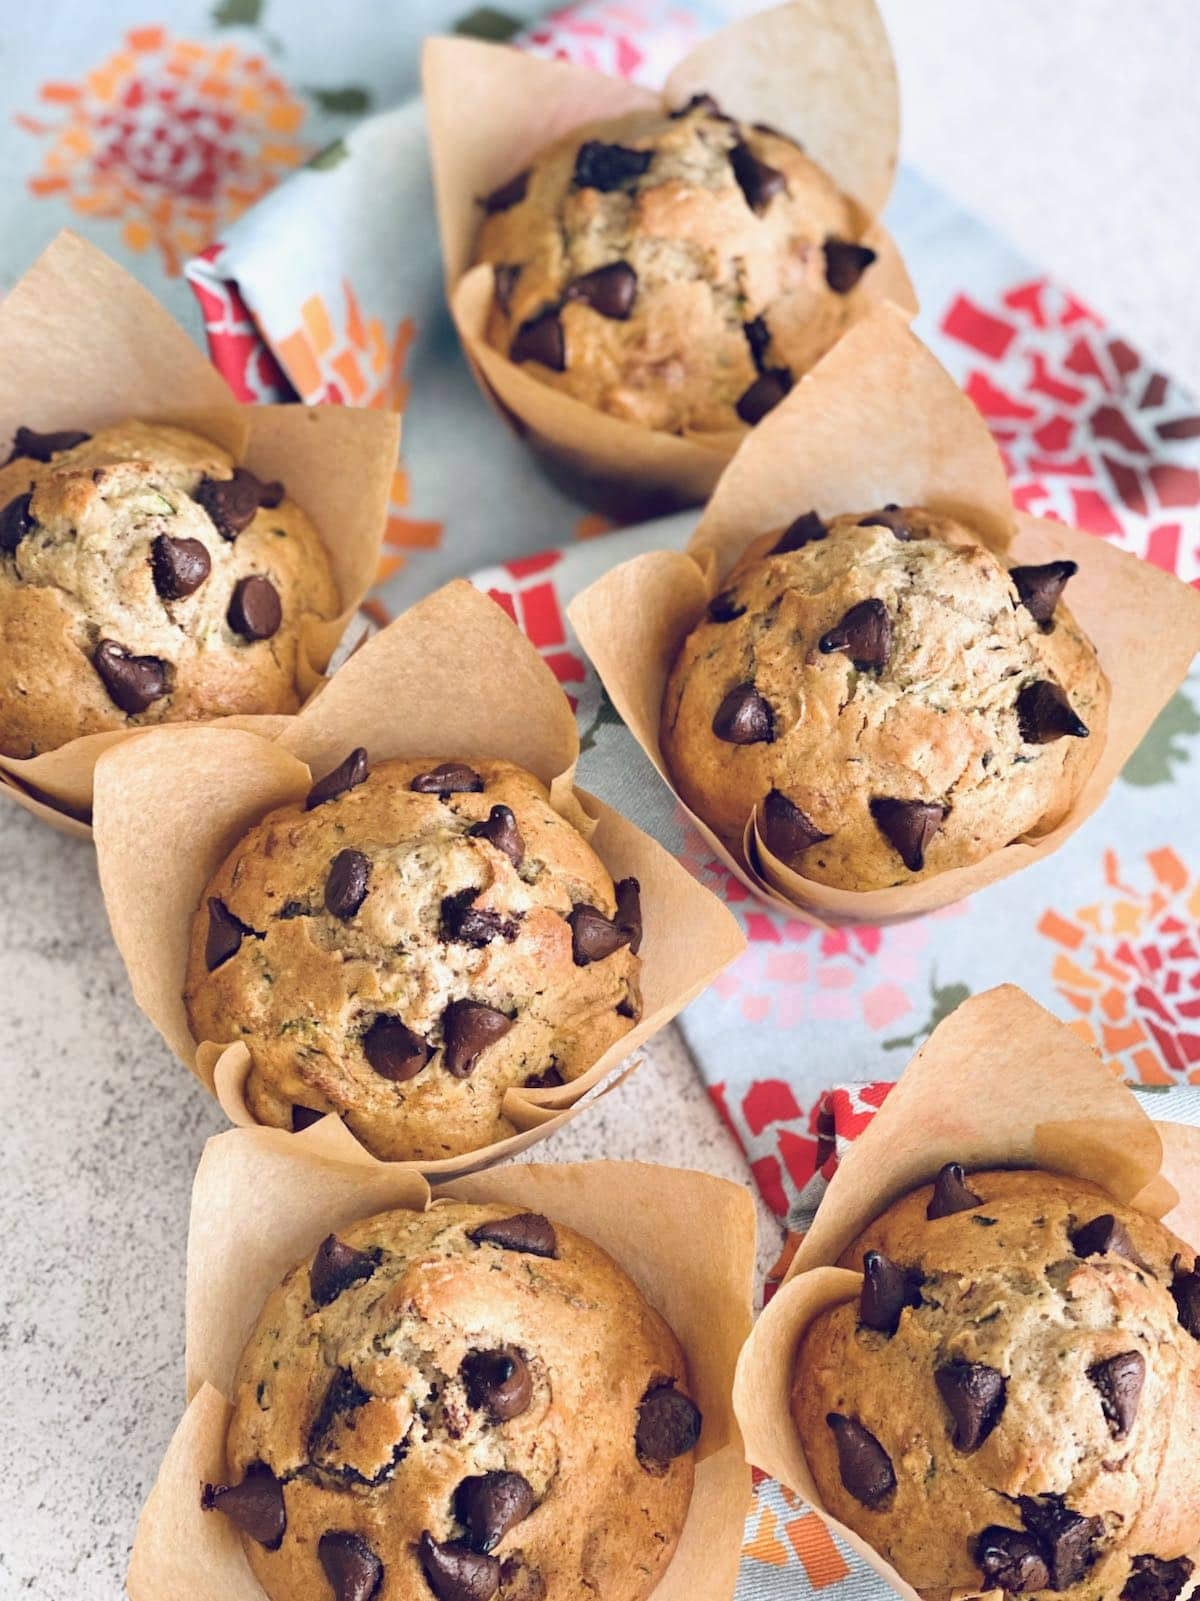 zucchini chocolate chip muffins lined up in a row.